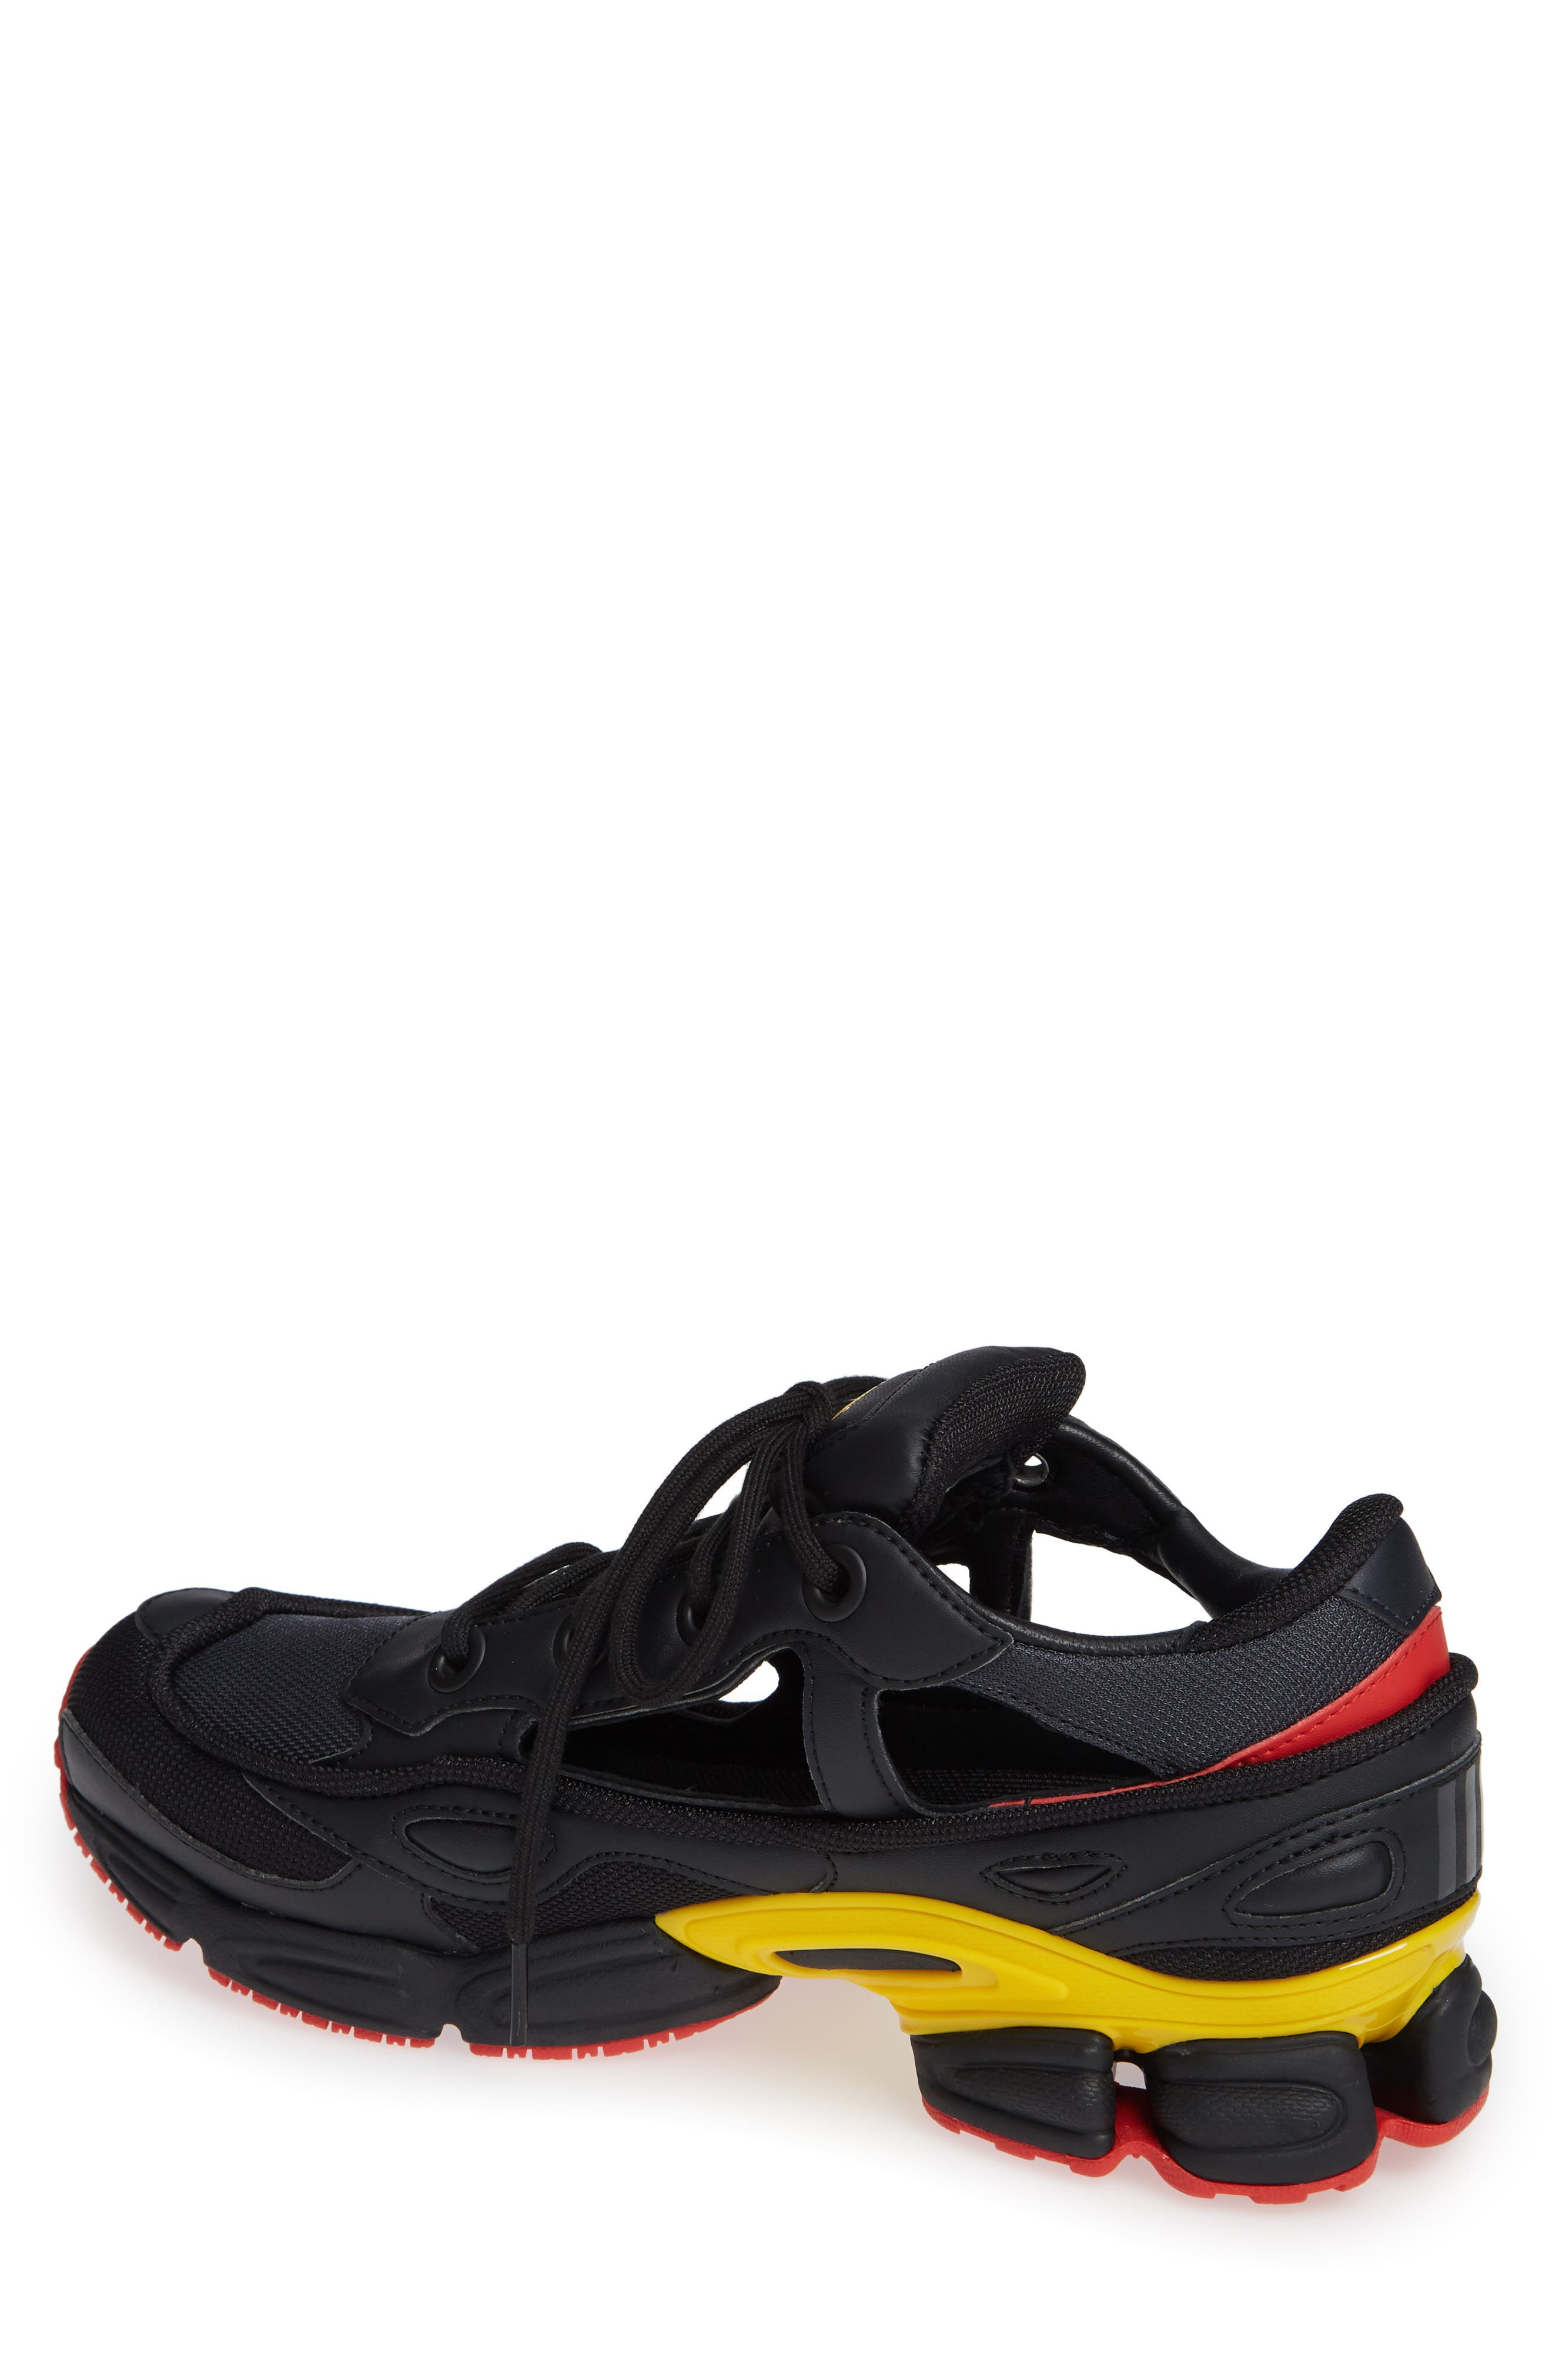 adidas by Raf Simons Replicant Ozweego Sneaker,                             Alternate thumbnail 2, color,                             CORE BLACK/ NIGHT GREY